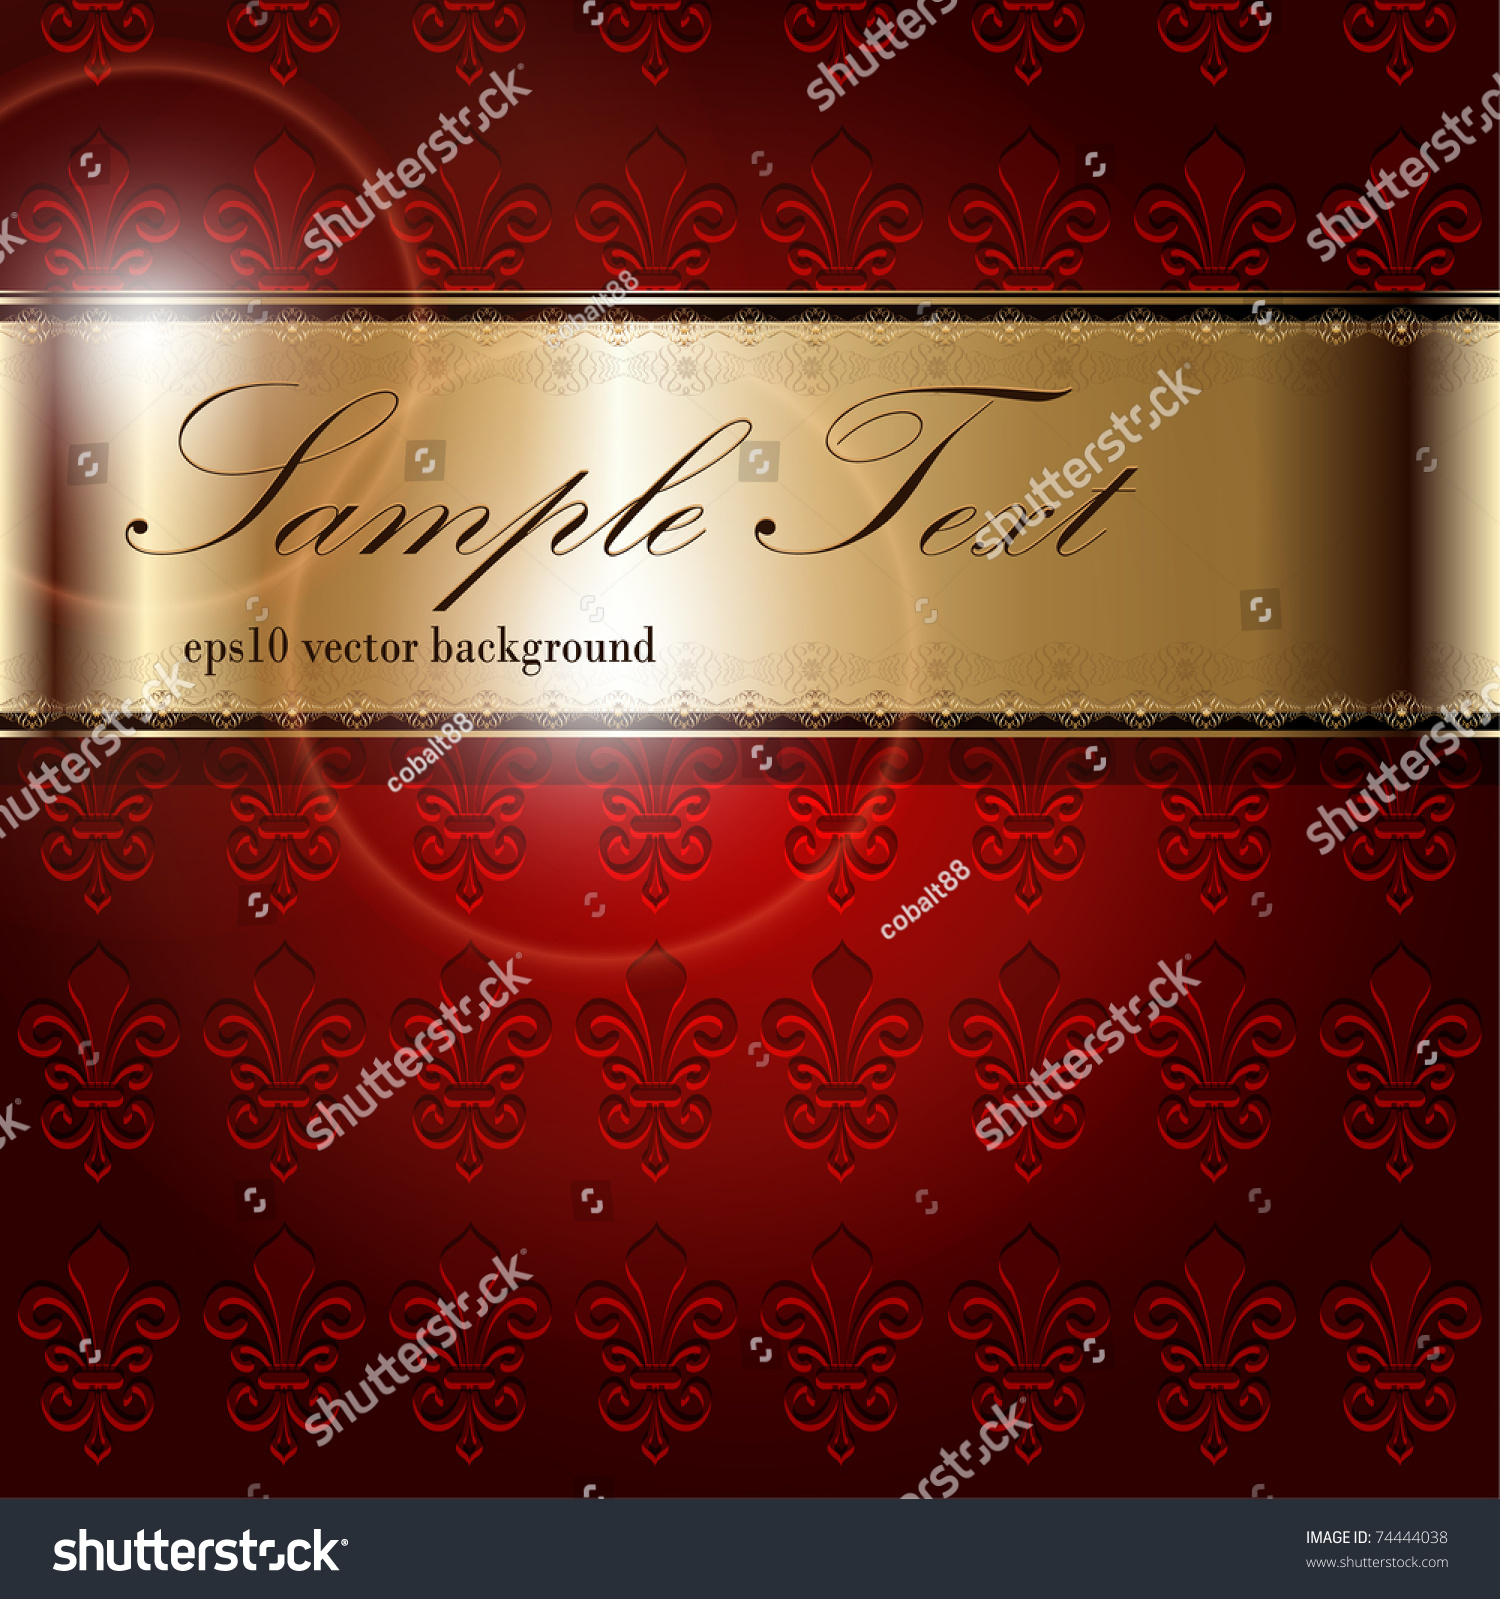 Abstract Background Luxury Purple With Gold, Vector. - 74444038 : Shutterstock